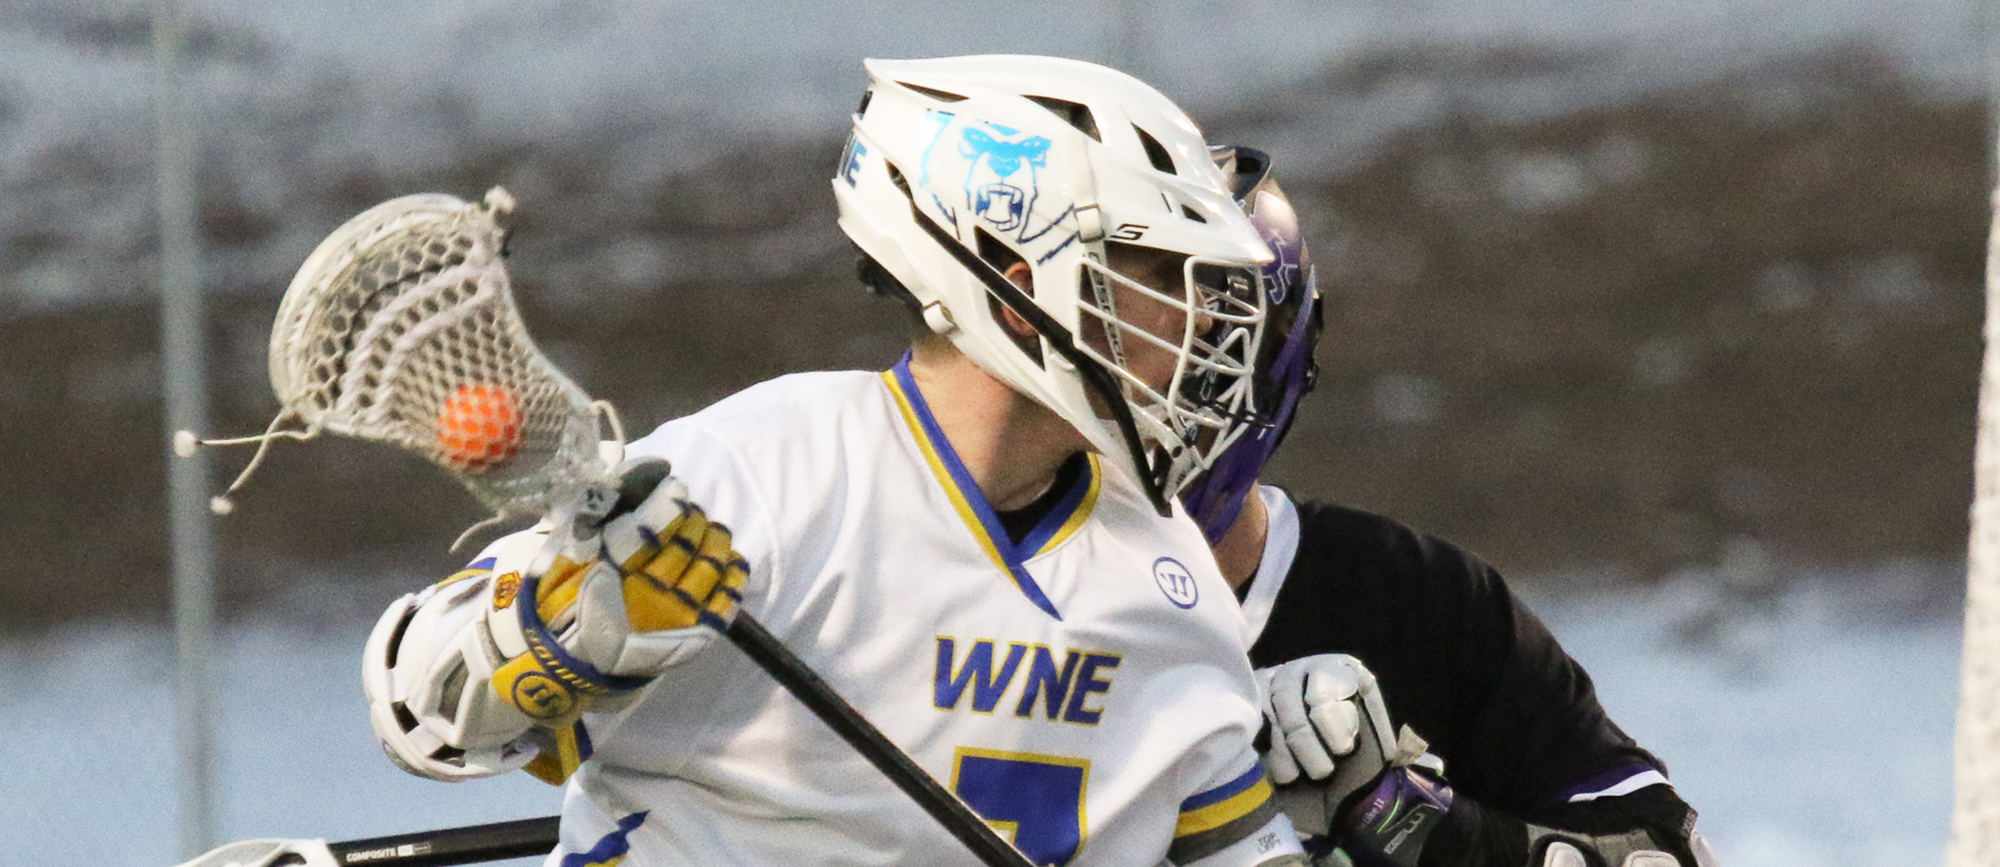 Freshman Tim Bannon totaled two goals and one assist in Western New England's 16-7 loss to No. 20 St. Lawrence on Thursday in Tampa. (Photo by Andrew Shilling)